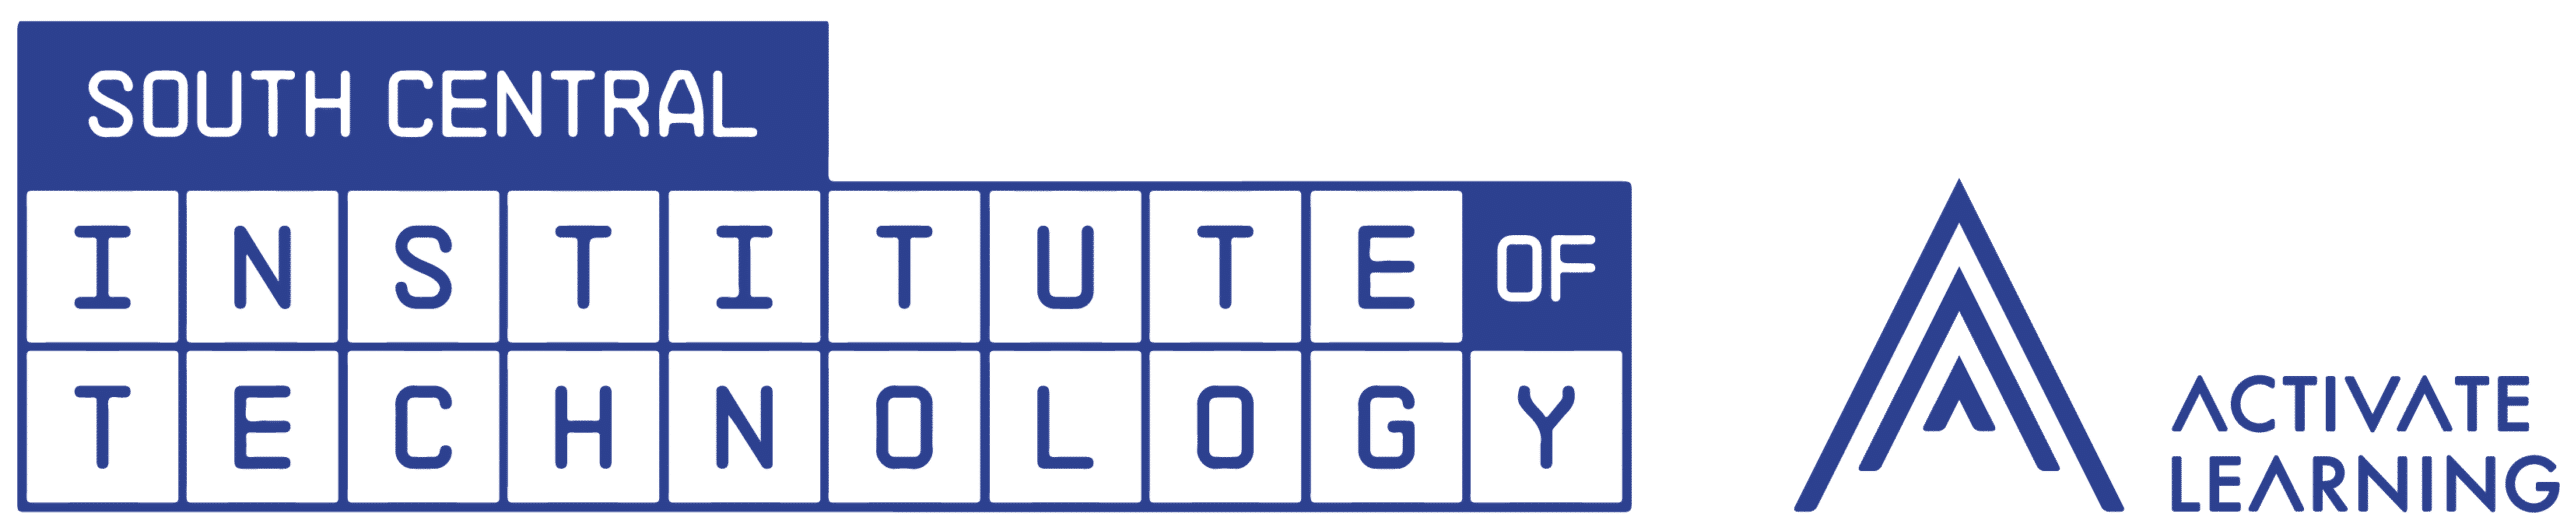 South Central Institute of Technology logo